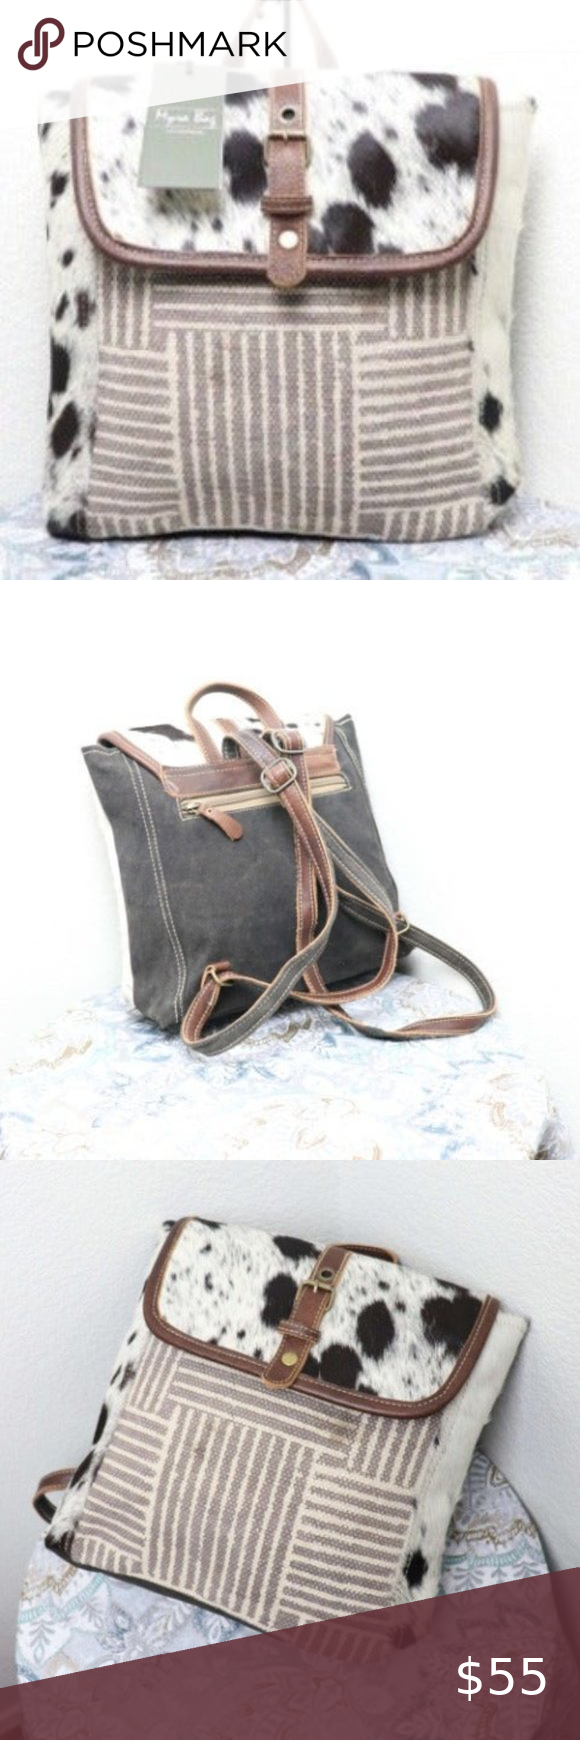 🆕 Myra Bag COWHIDE Leather Backpack Purse Travel ❤️Myra Bag. Ships NEXT business day...Always! ❤️Rug, Hairon, Canvas, Leather ❤️1 exterior zipper pocket ❤️Interior 2 slip pockets 1 zipper pocket ❤️Zipper Enclosure  Measurements: Width: 14.5 in / 37 cm Depth: 4 in / 10 cm Height: 11.5 in / 29 cm Handle: 4 in / 10 cm   CONDITION: New Myra Bag Smoke free pet free environment  L158101586.C0204.P0502.001 Myra Bag Bags Backpacks